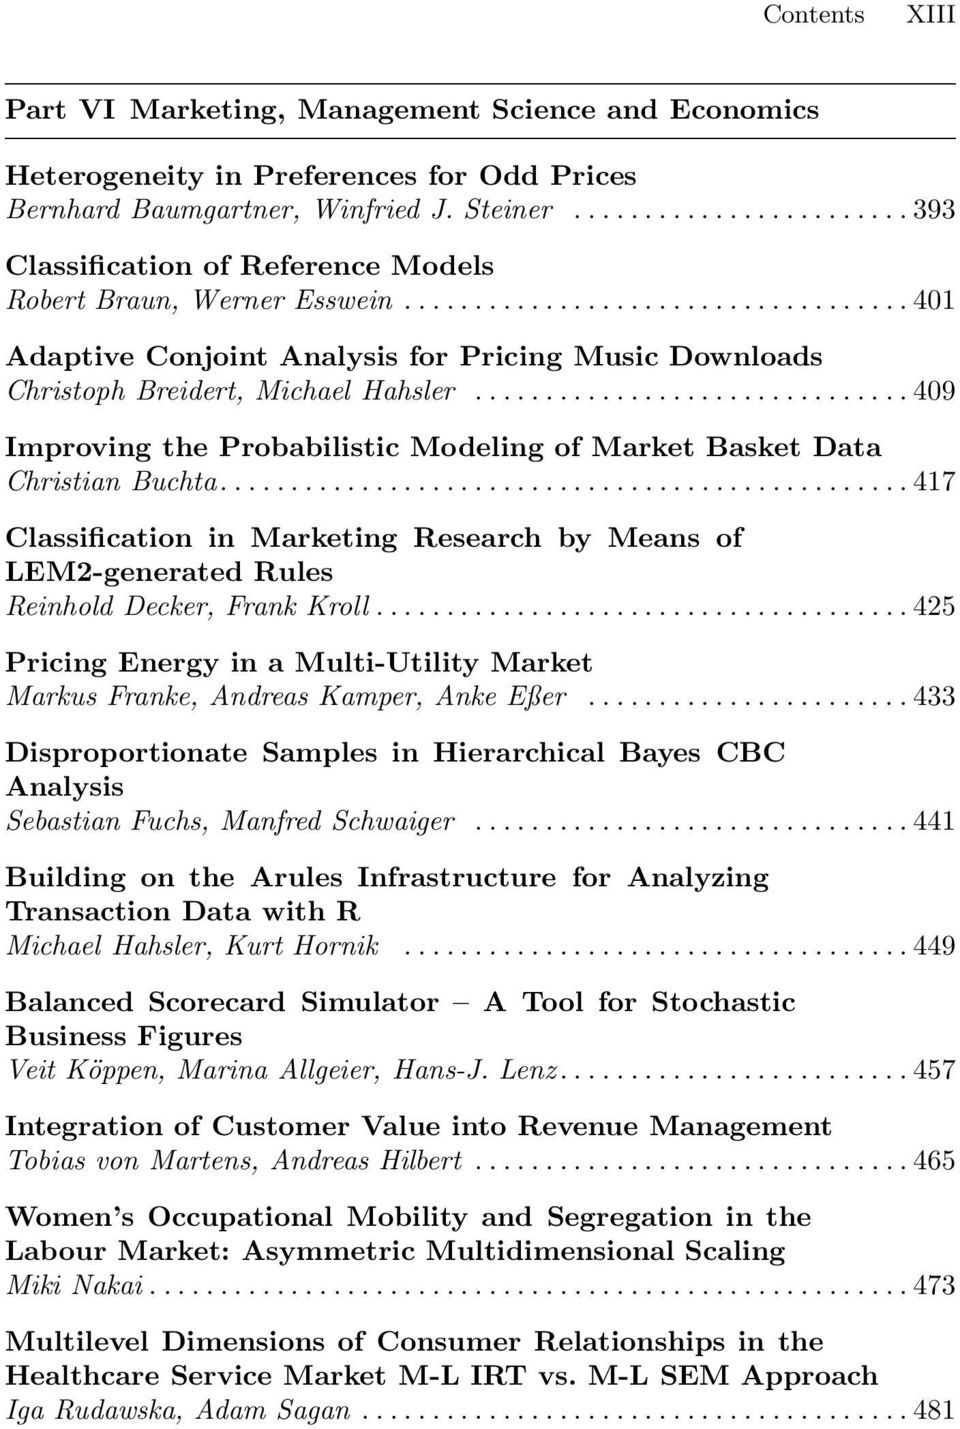 ..409 Improving the Probabilistic Modeling of Market Basket Data Christian Buchta...417 Classification in Marketing Research by Means of LEM2-generated Rules Reinhold Decker, Frank Kroll.